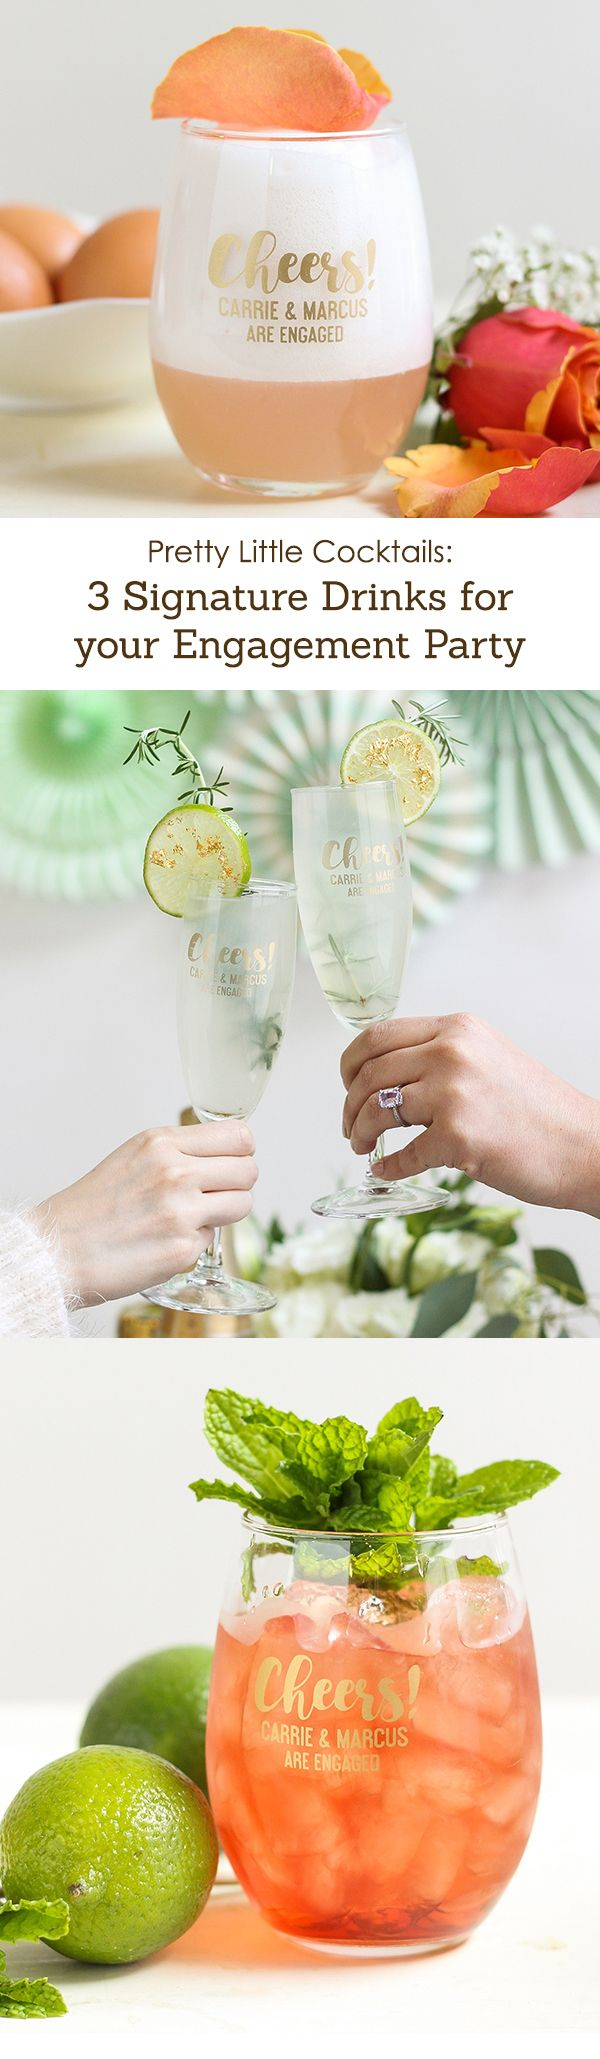 You're engaged! Celebrate with a cocktail engagement party! These pretty signature drinks are just the place to get you started.